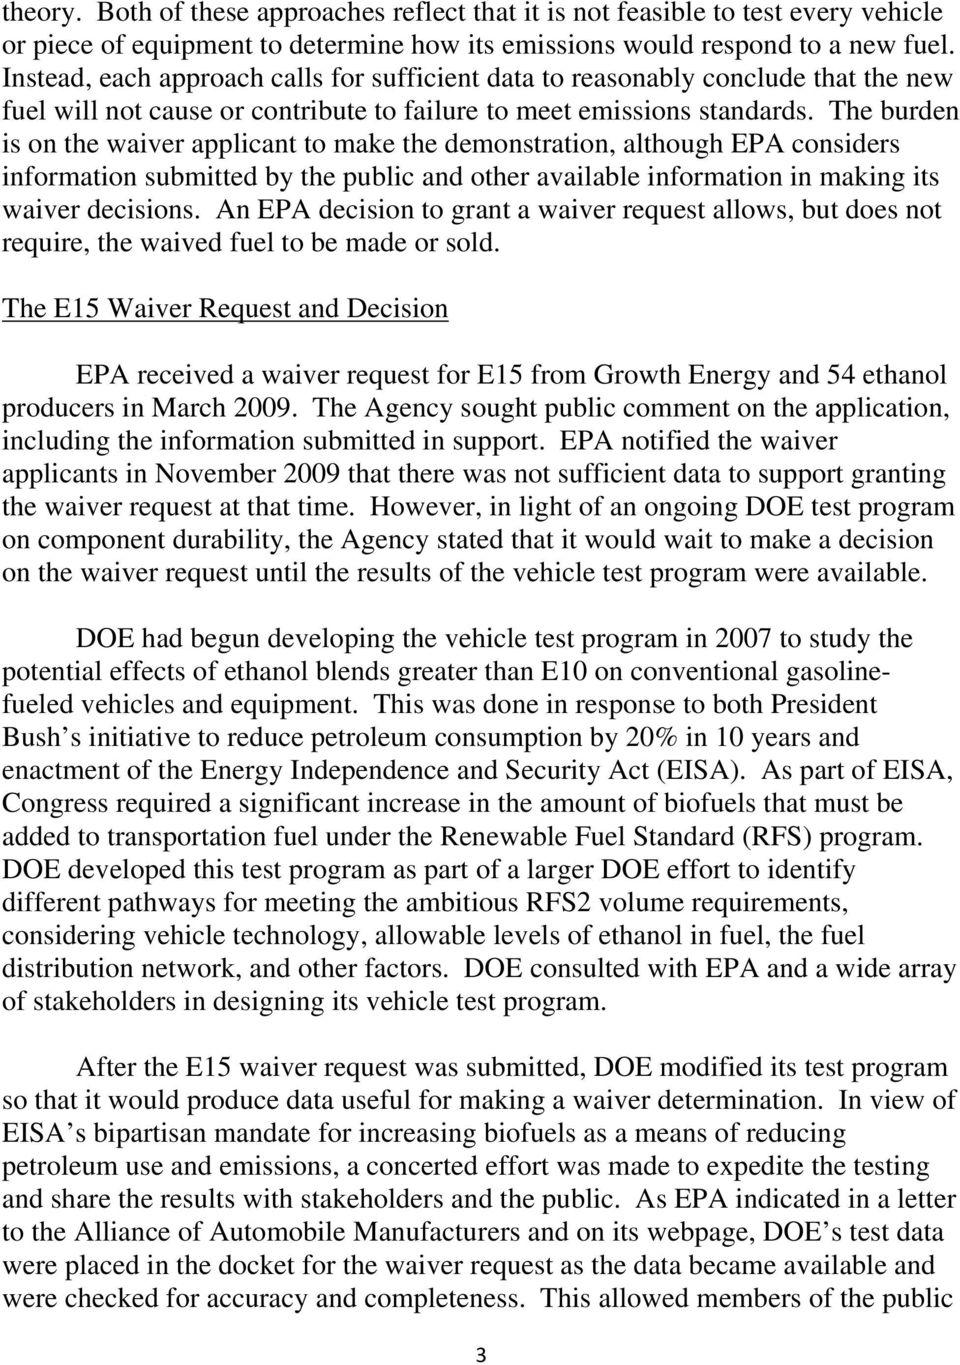 The burden is on the waiver applicant to make the demonstration, although EPA considers information submitted by the public and other available information in making its waiver decisions.